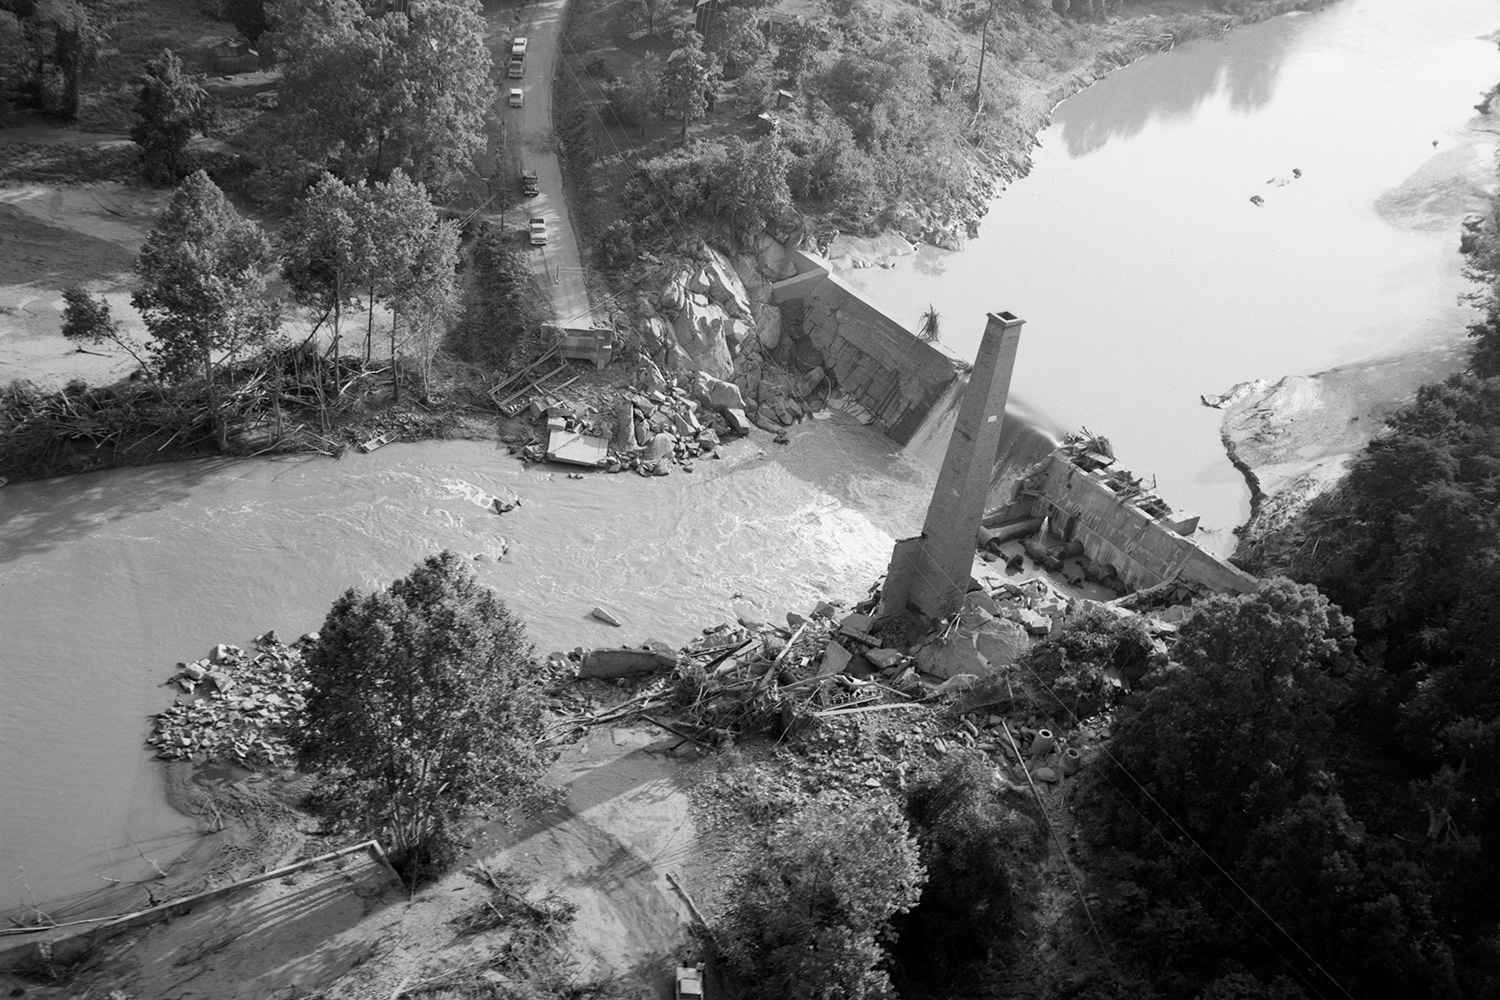 Camille's floods washed out the Schuyler bridge and hydroelectric dam on the Rockfish River in Nelson County. (Photo courtesy The Library of Virginia/Flickr Commons)